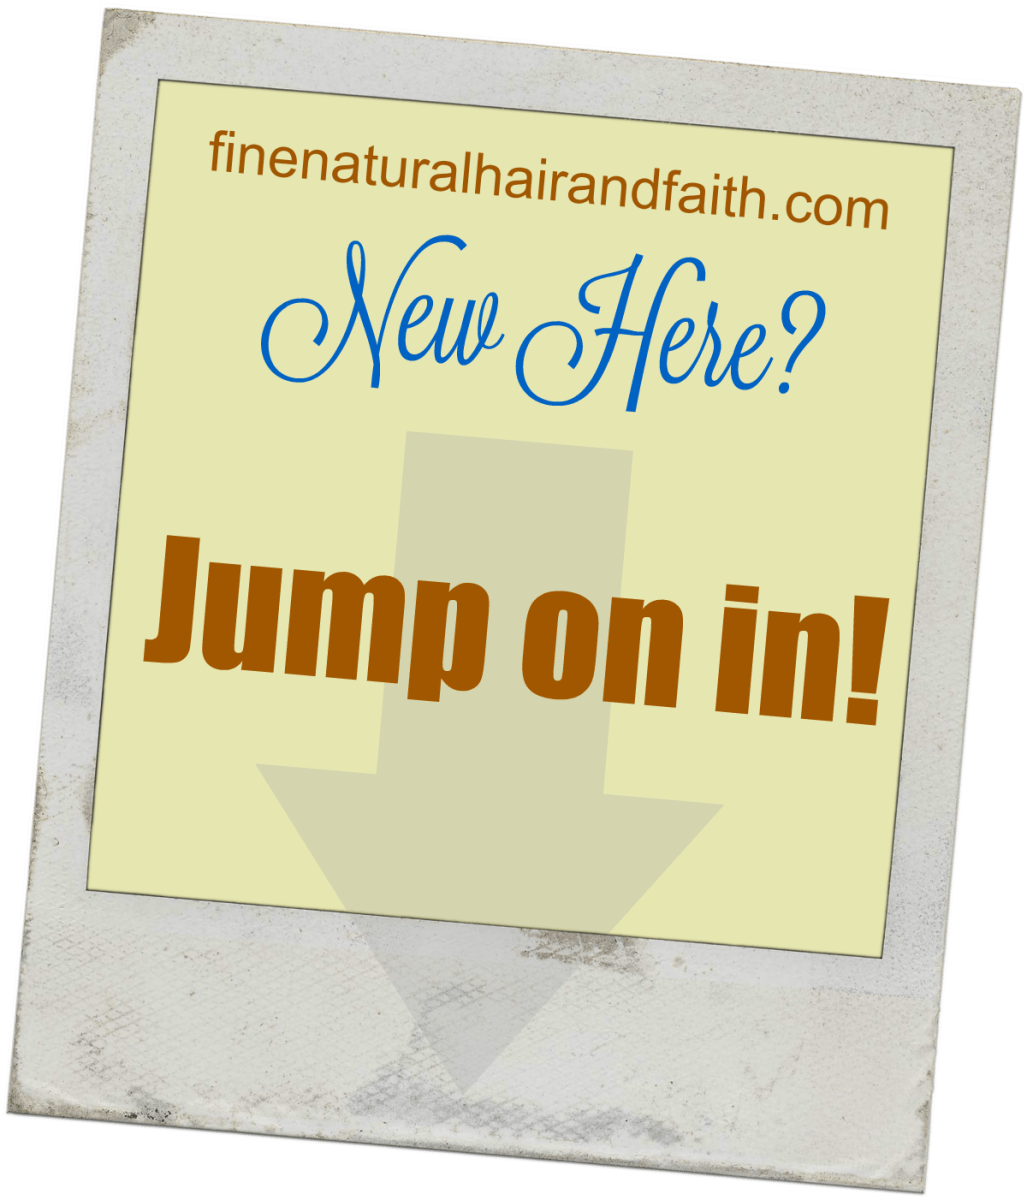 Navigating Fine Natural Hair and Faith - Start Here!